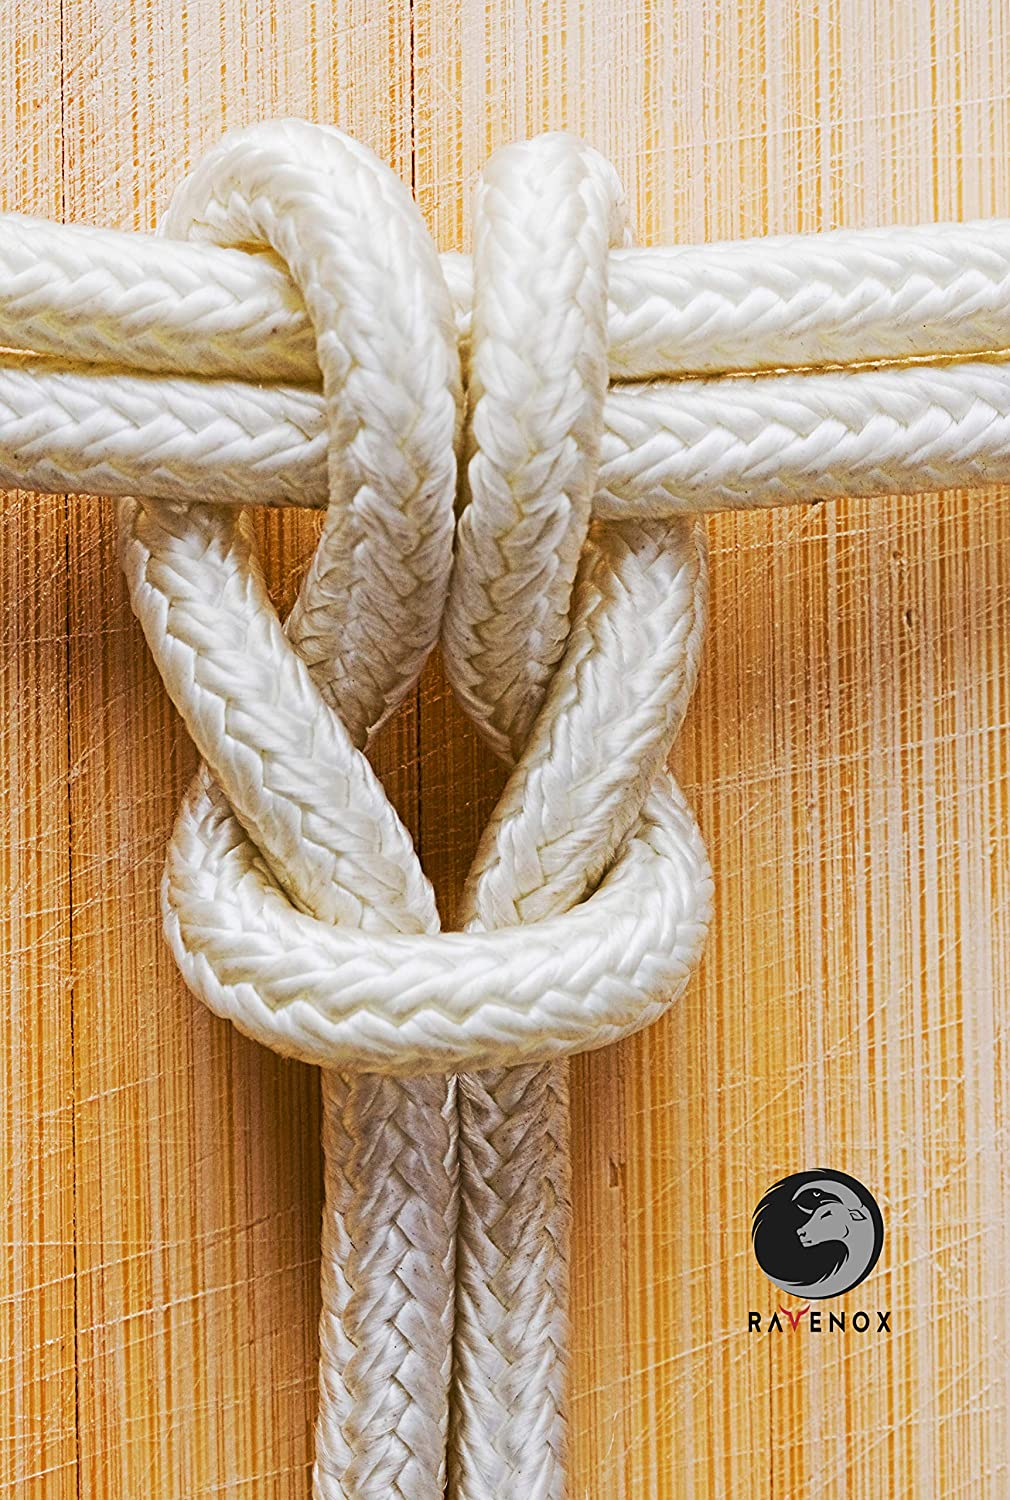 Pulling Towing Securing and Tie-Down Needs MILSPEC Cord Mooring Lines /& Anchor Lines Made in The USA by The Foot and Diameter Ravenox Solid Braid Nylon Rope for All Your Lifting